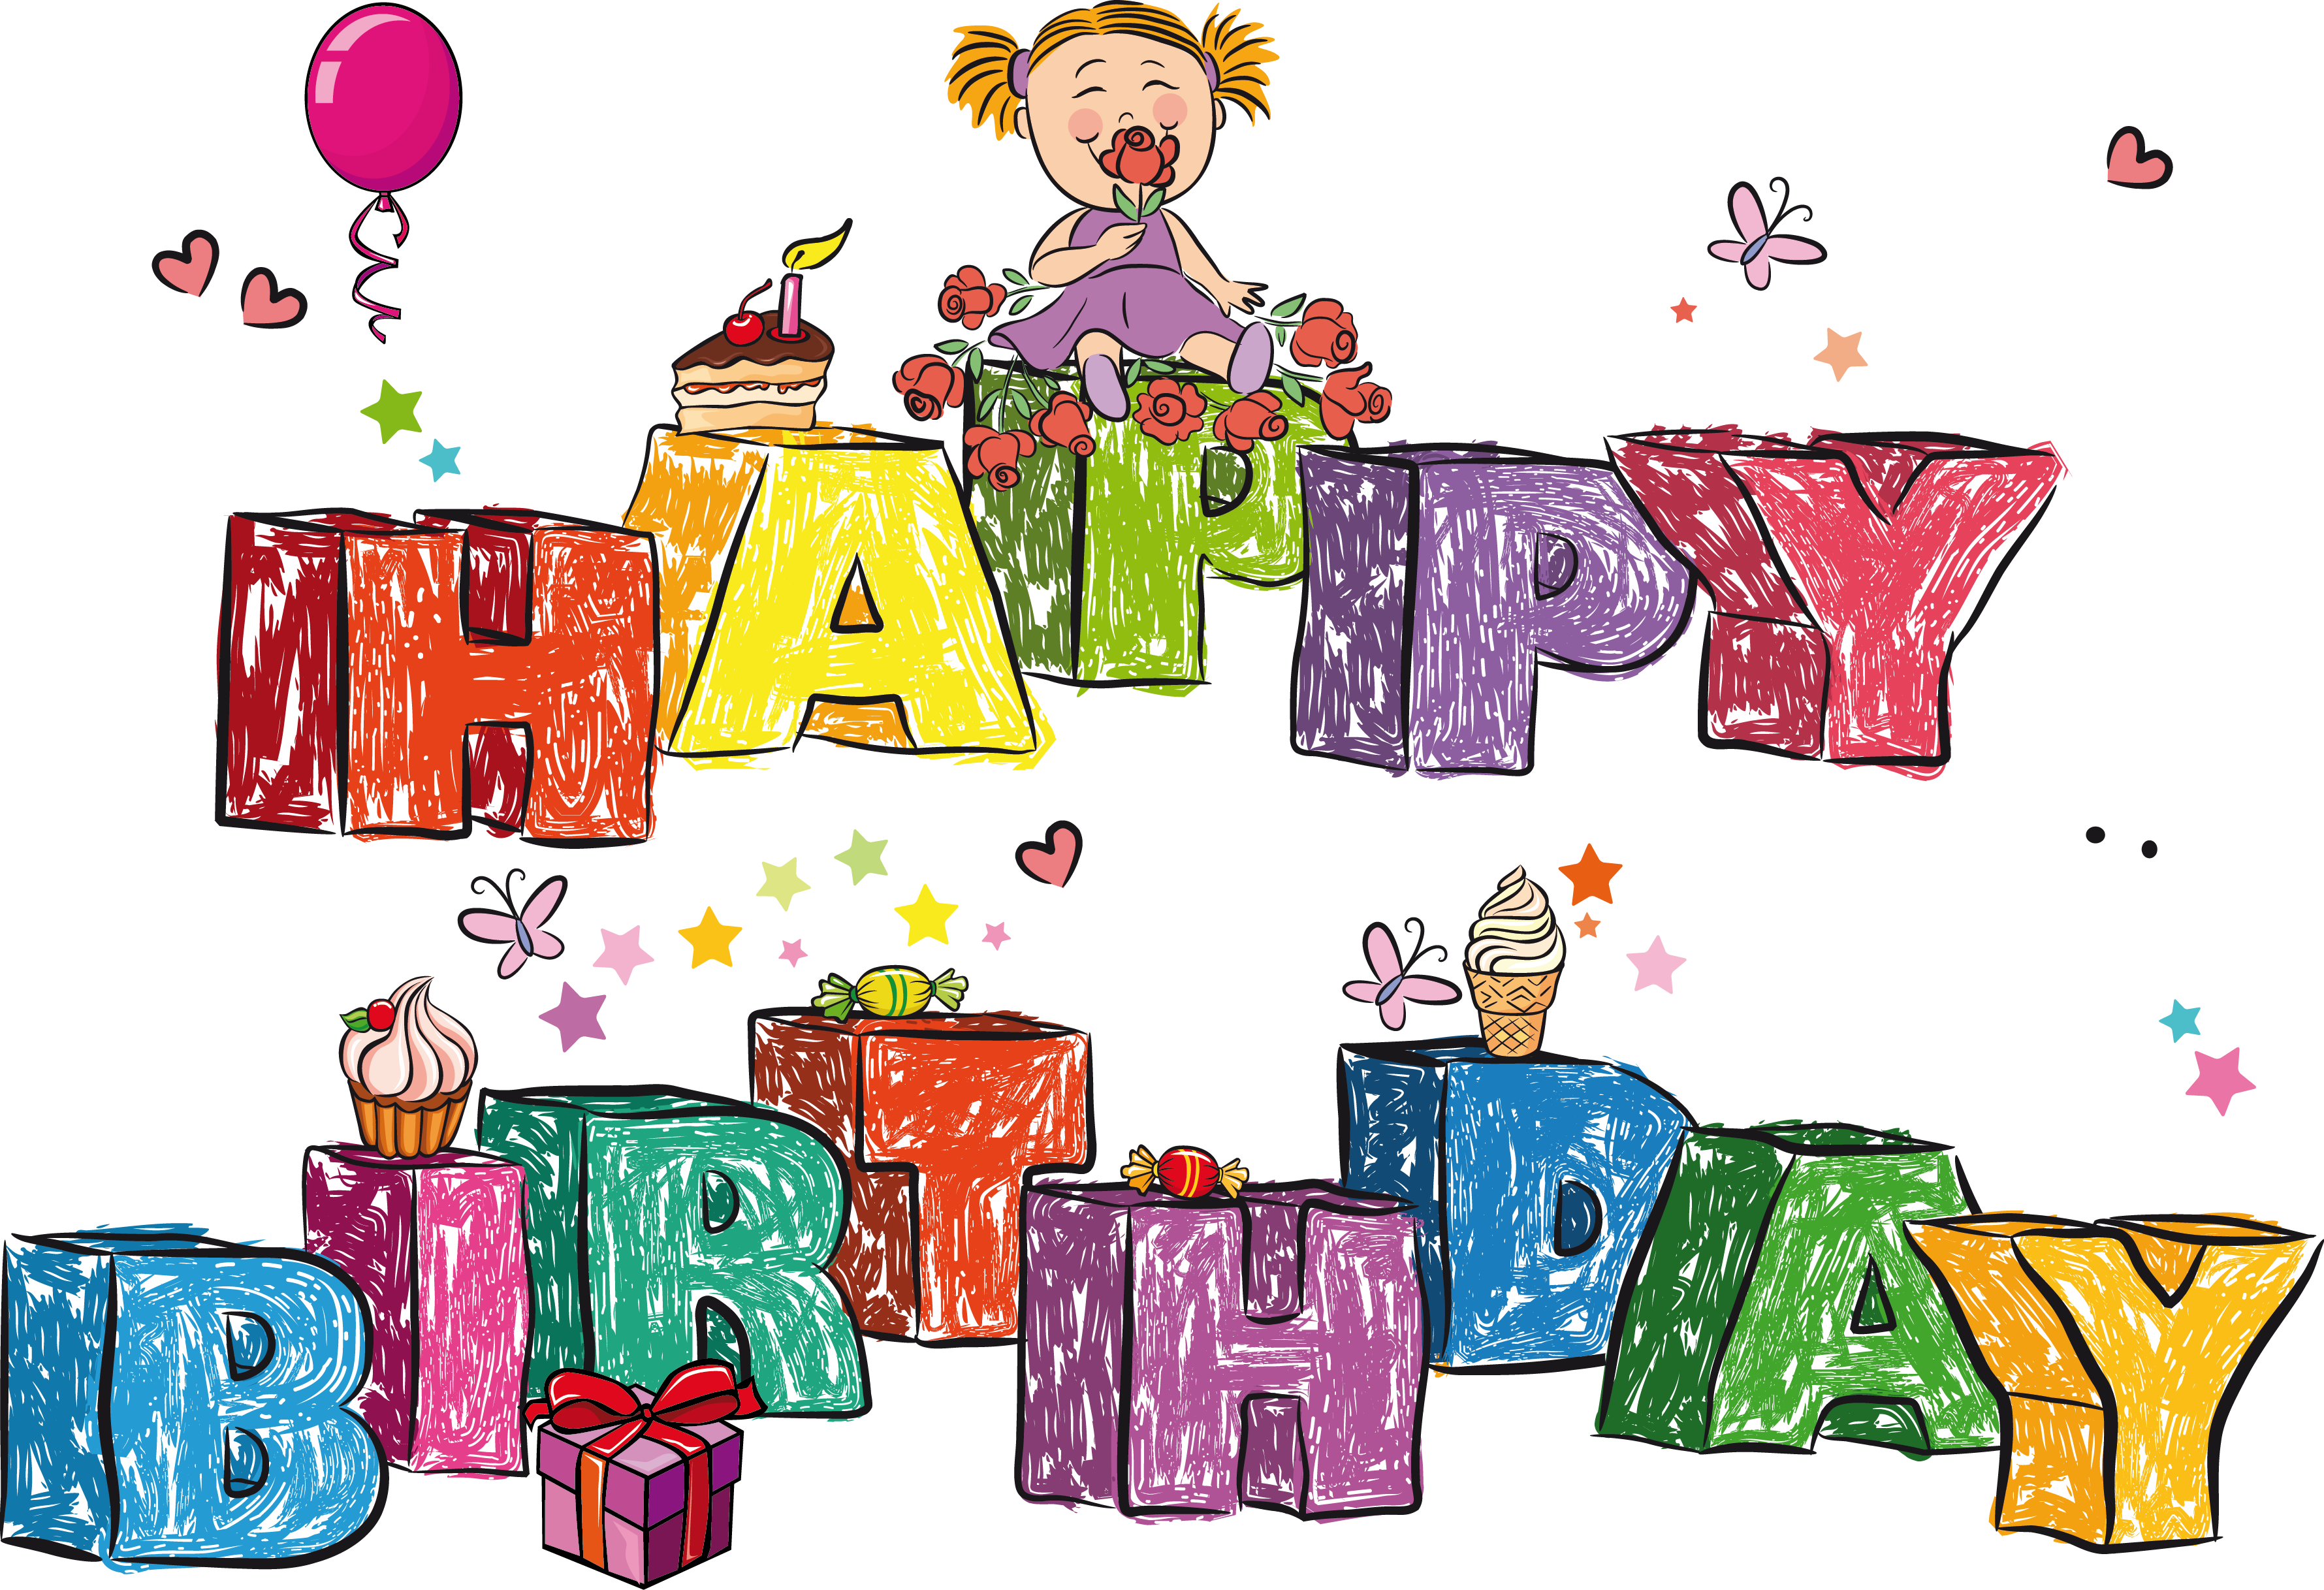 hd happy birthday images kids - hd happy birthday images kids - Wallpapers, hd-wallpapers, HD, Free, Birthday, 4k-wallpapers, 4k